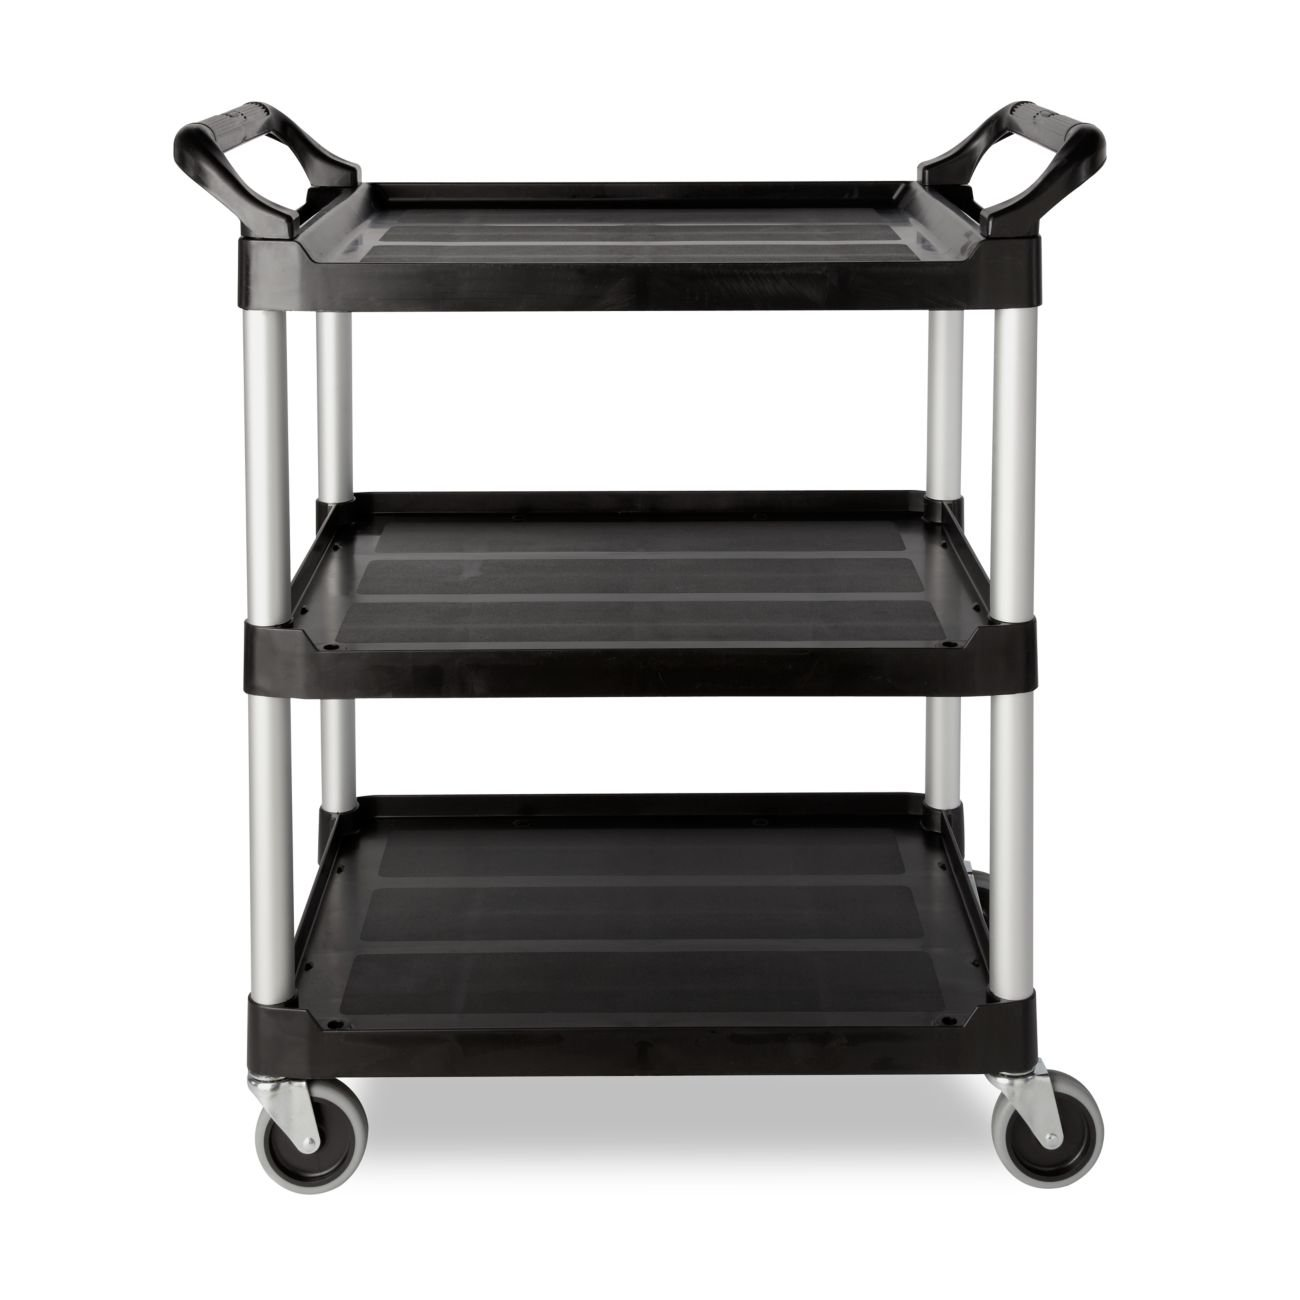 amazoncom rubbermaid commercial 342488bla economy plastic cart threeshelf 1858w x 3358d x 3734h black industrial u0026 scientific